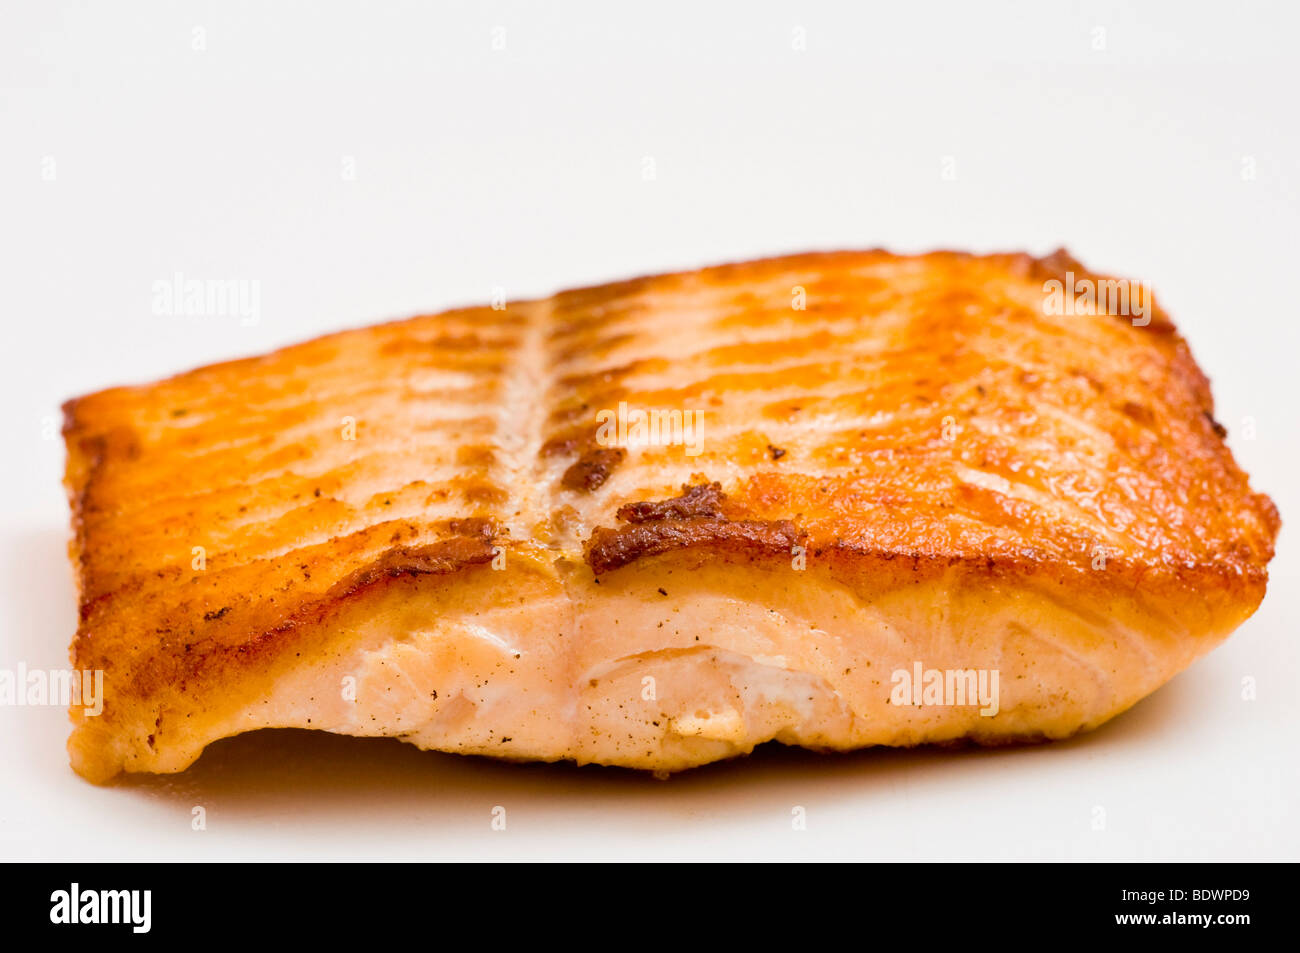 cooked salmon fish fillet studio shoot stock photo 25767317 alamy